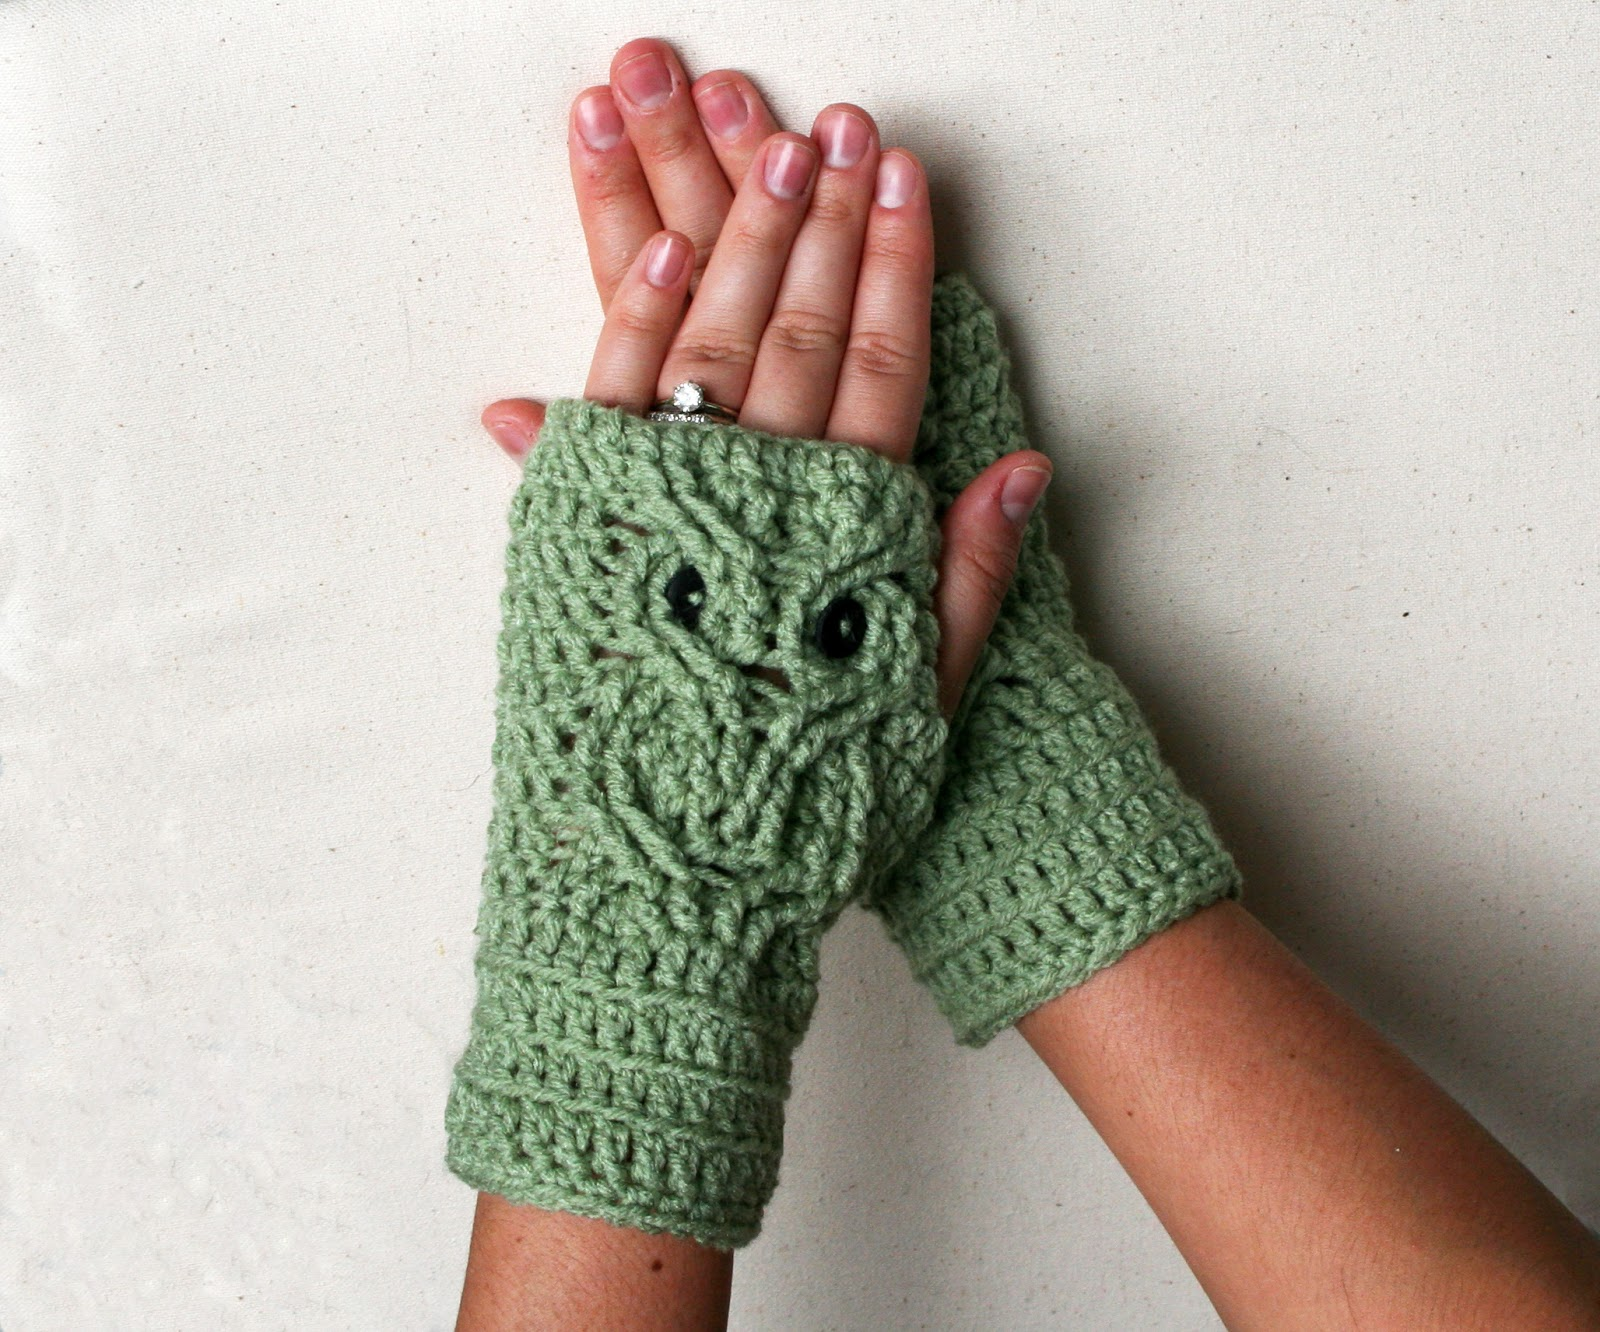 Crocheting Fingerless Gloves : Tampa Bay Crochet: Free Crochet Pattern: Owl Fingerless Gloves